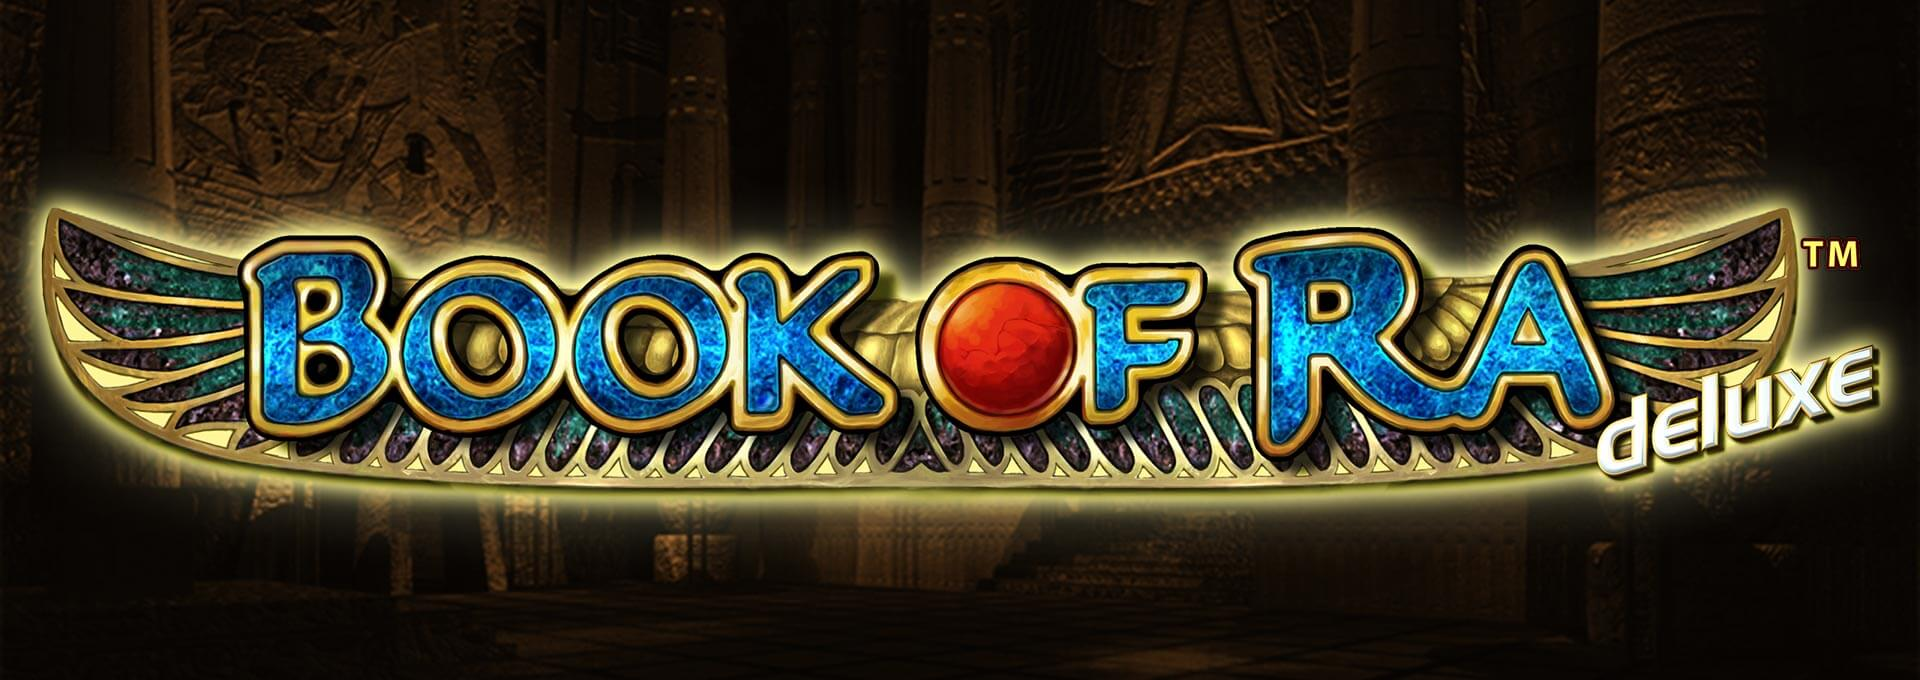 europa casino online slots book of ra free download